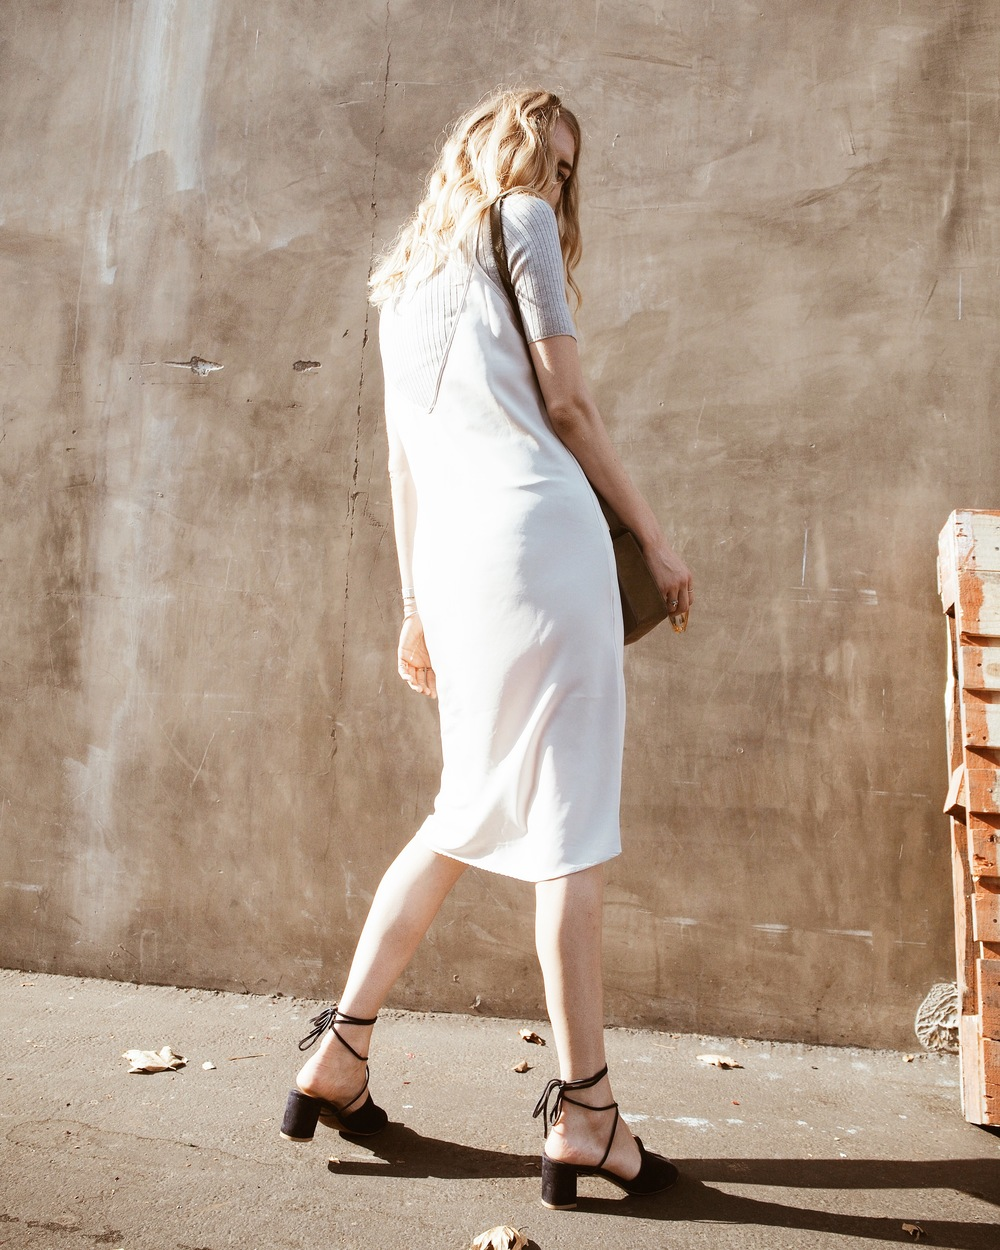 Everlane Ribbed Tee The Sept Label Camille Slip Dress ATP Atelier Aiale Cross Body Bag By Far Valentina Shoes Street Style Taylr Anne www.taylranne.com